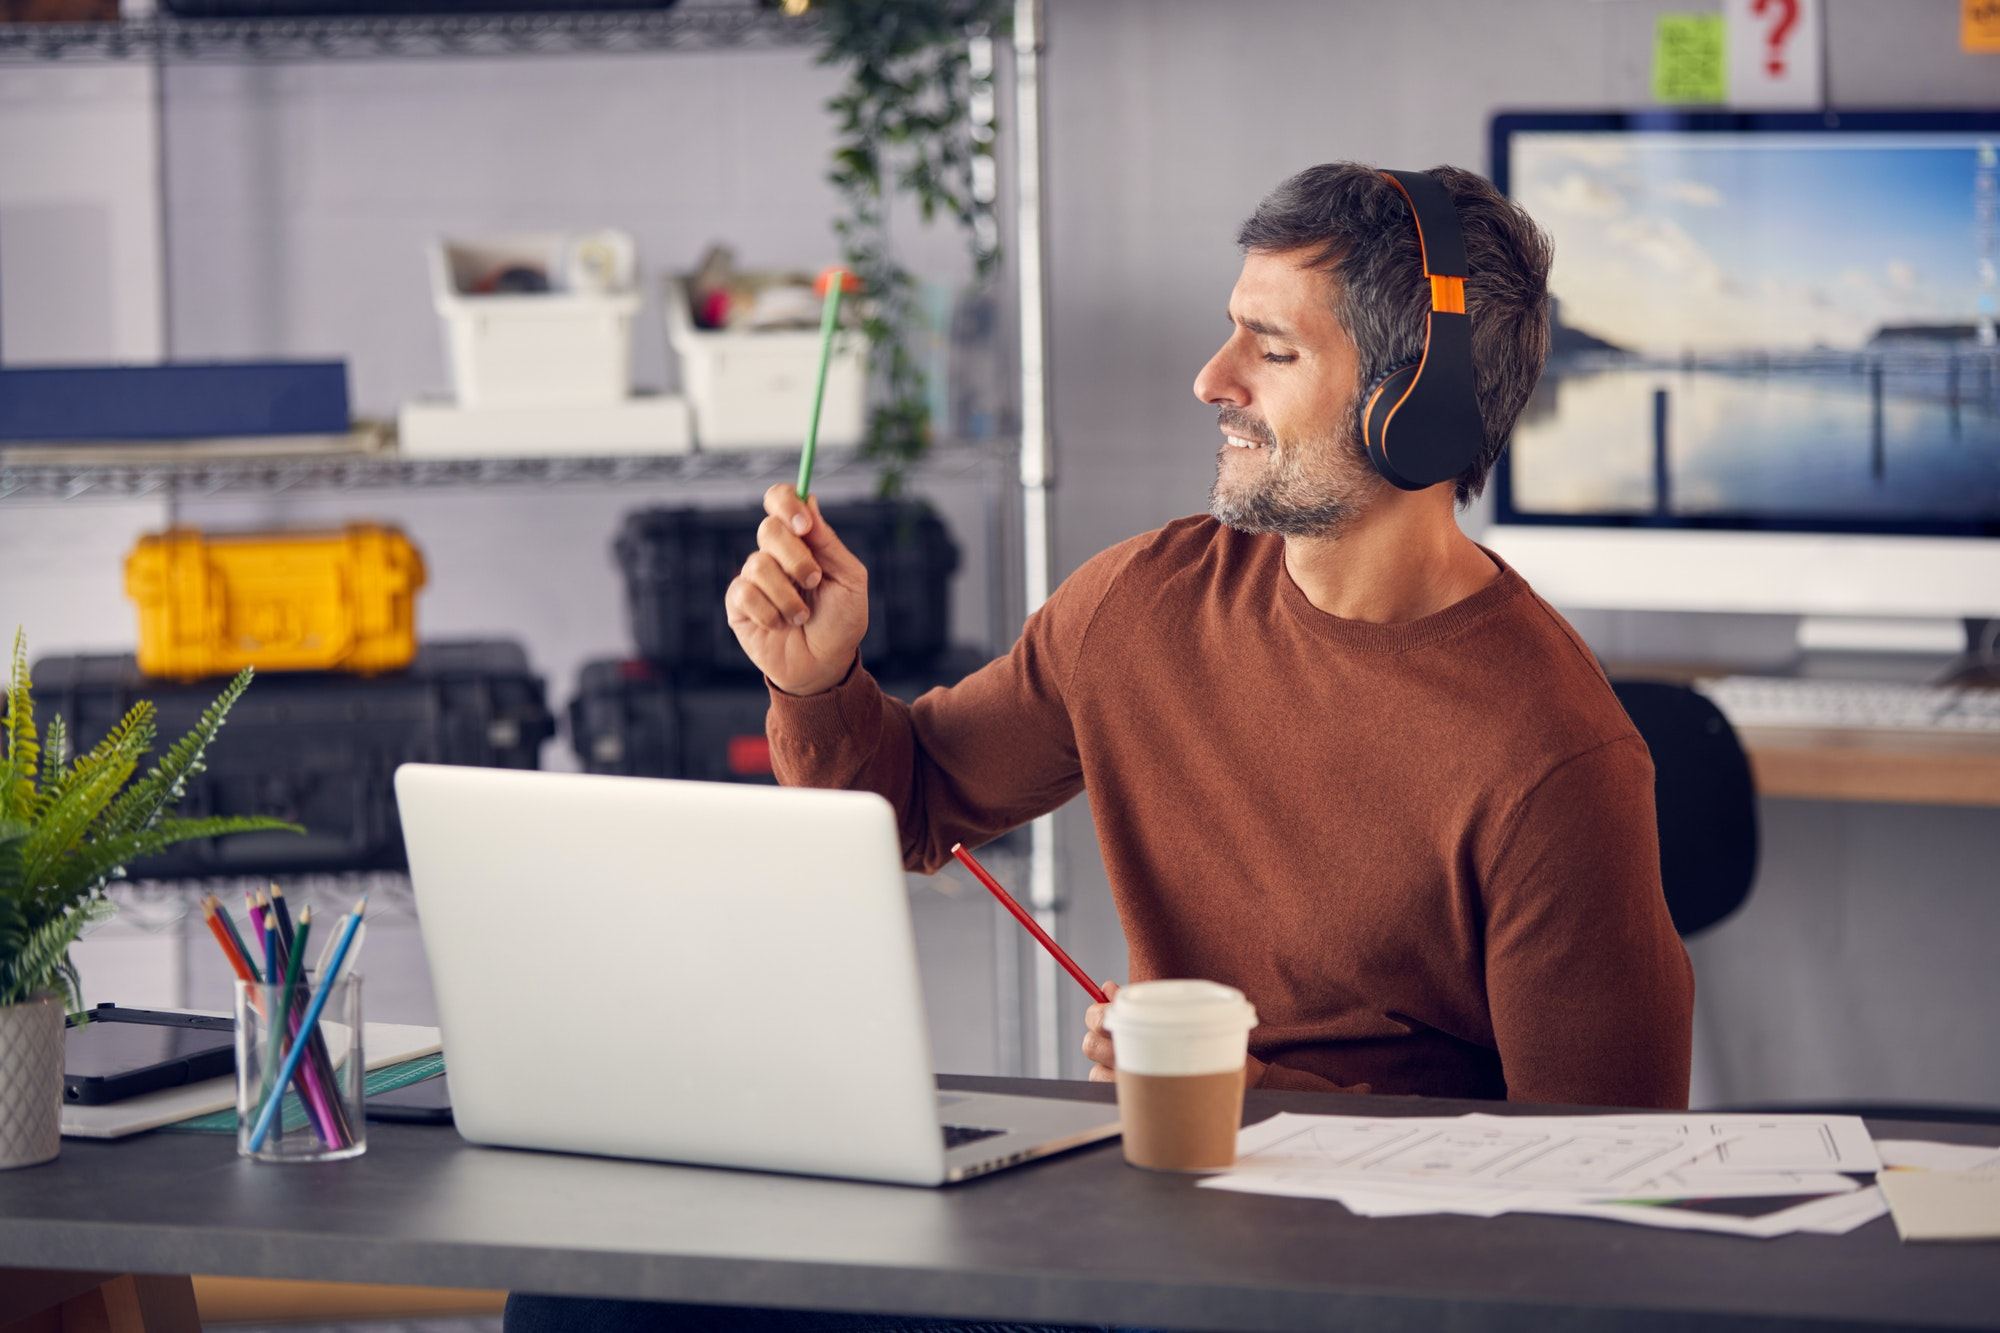 Male Advertising Marketing Or Design Creative With Wireless Headphones Air Drumming At Desk